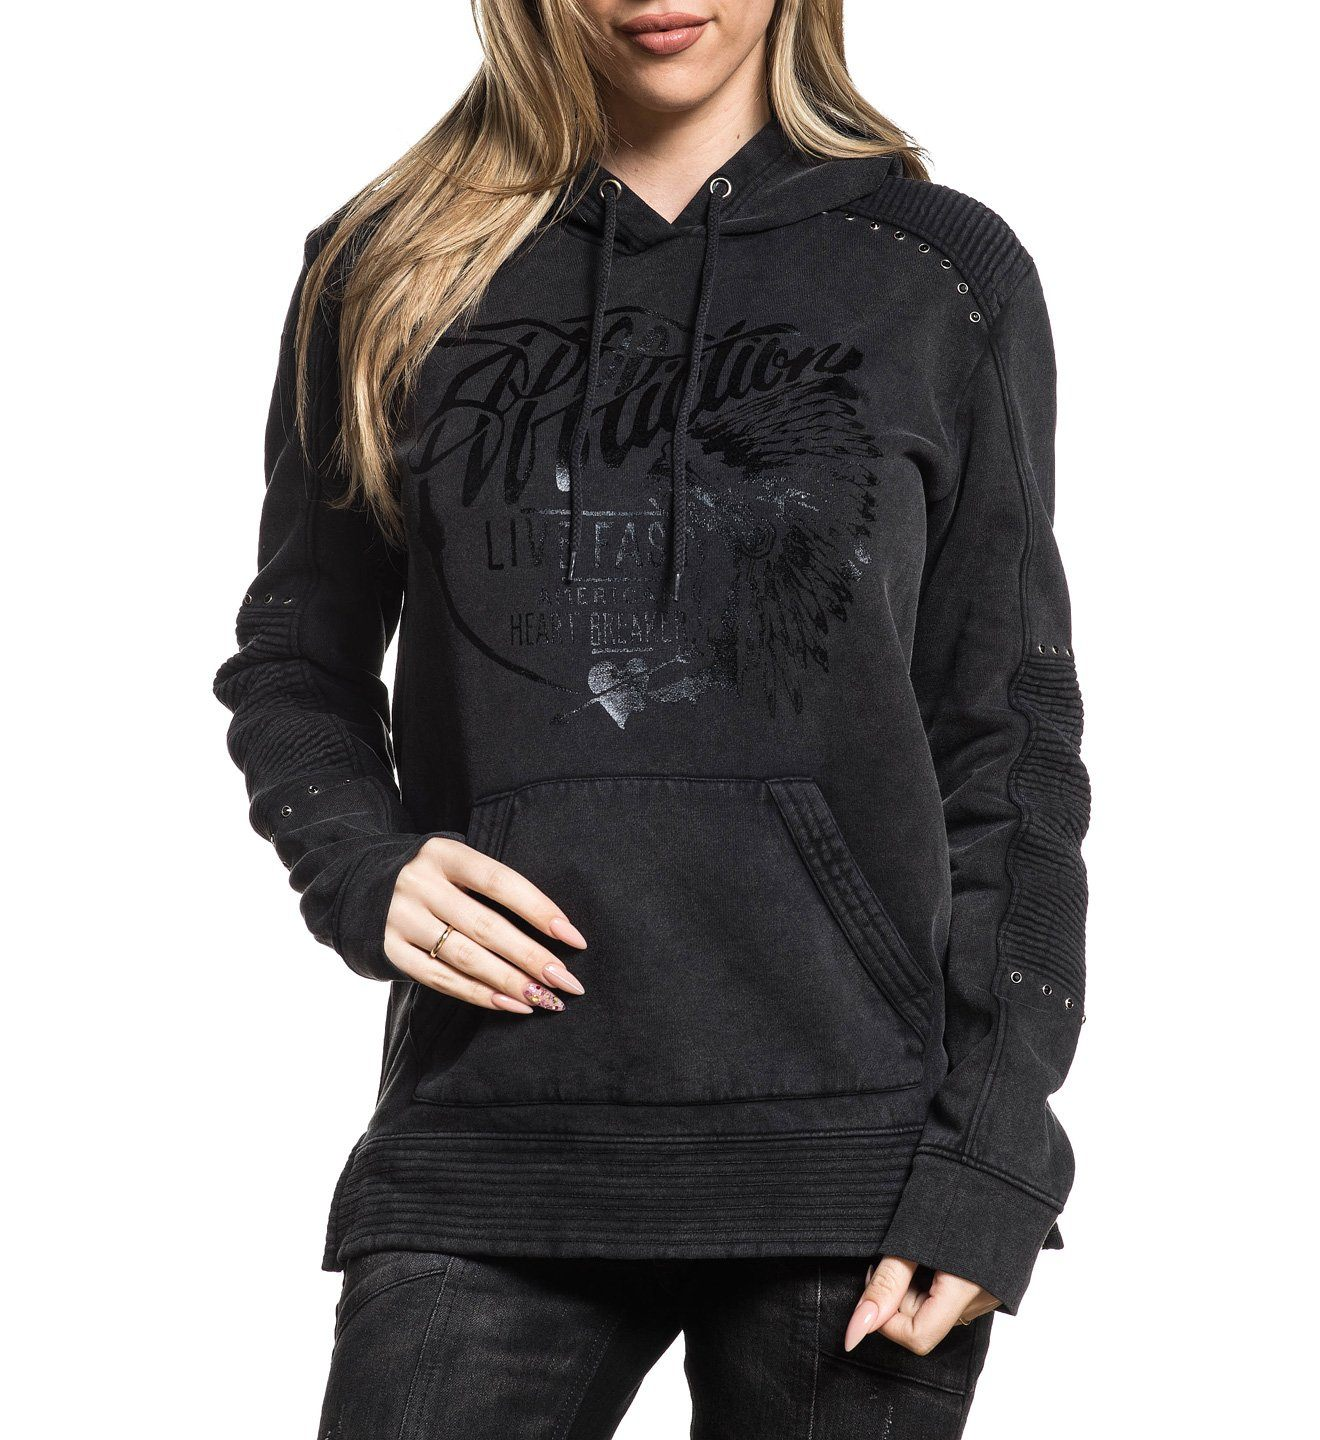 Breckenridge P/O Hood - Womens Hooded Sweatshirts - Affliction Clothing